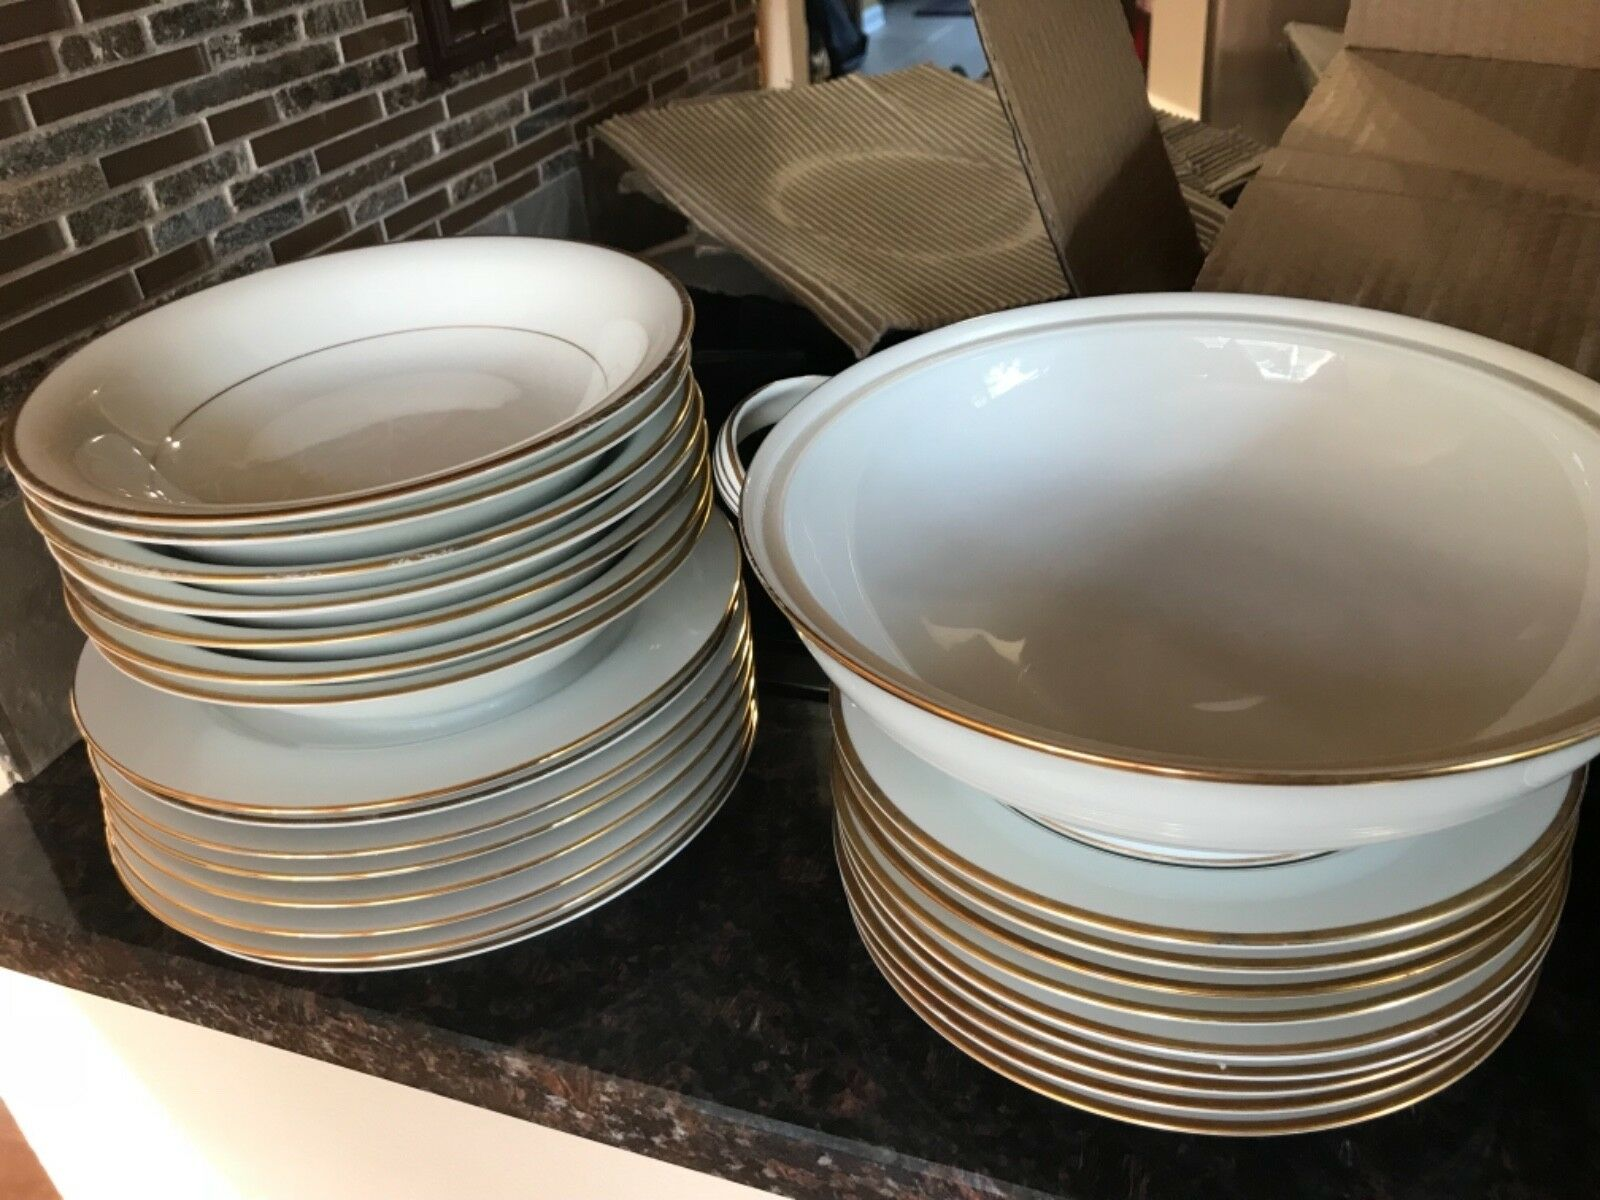 Dinner set 45 piece and tea cups, good condition, dishwasher safe